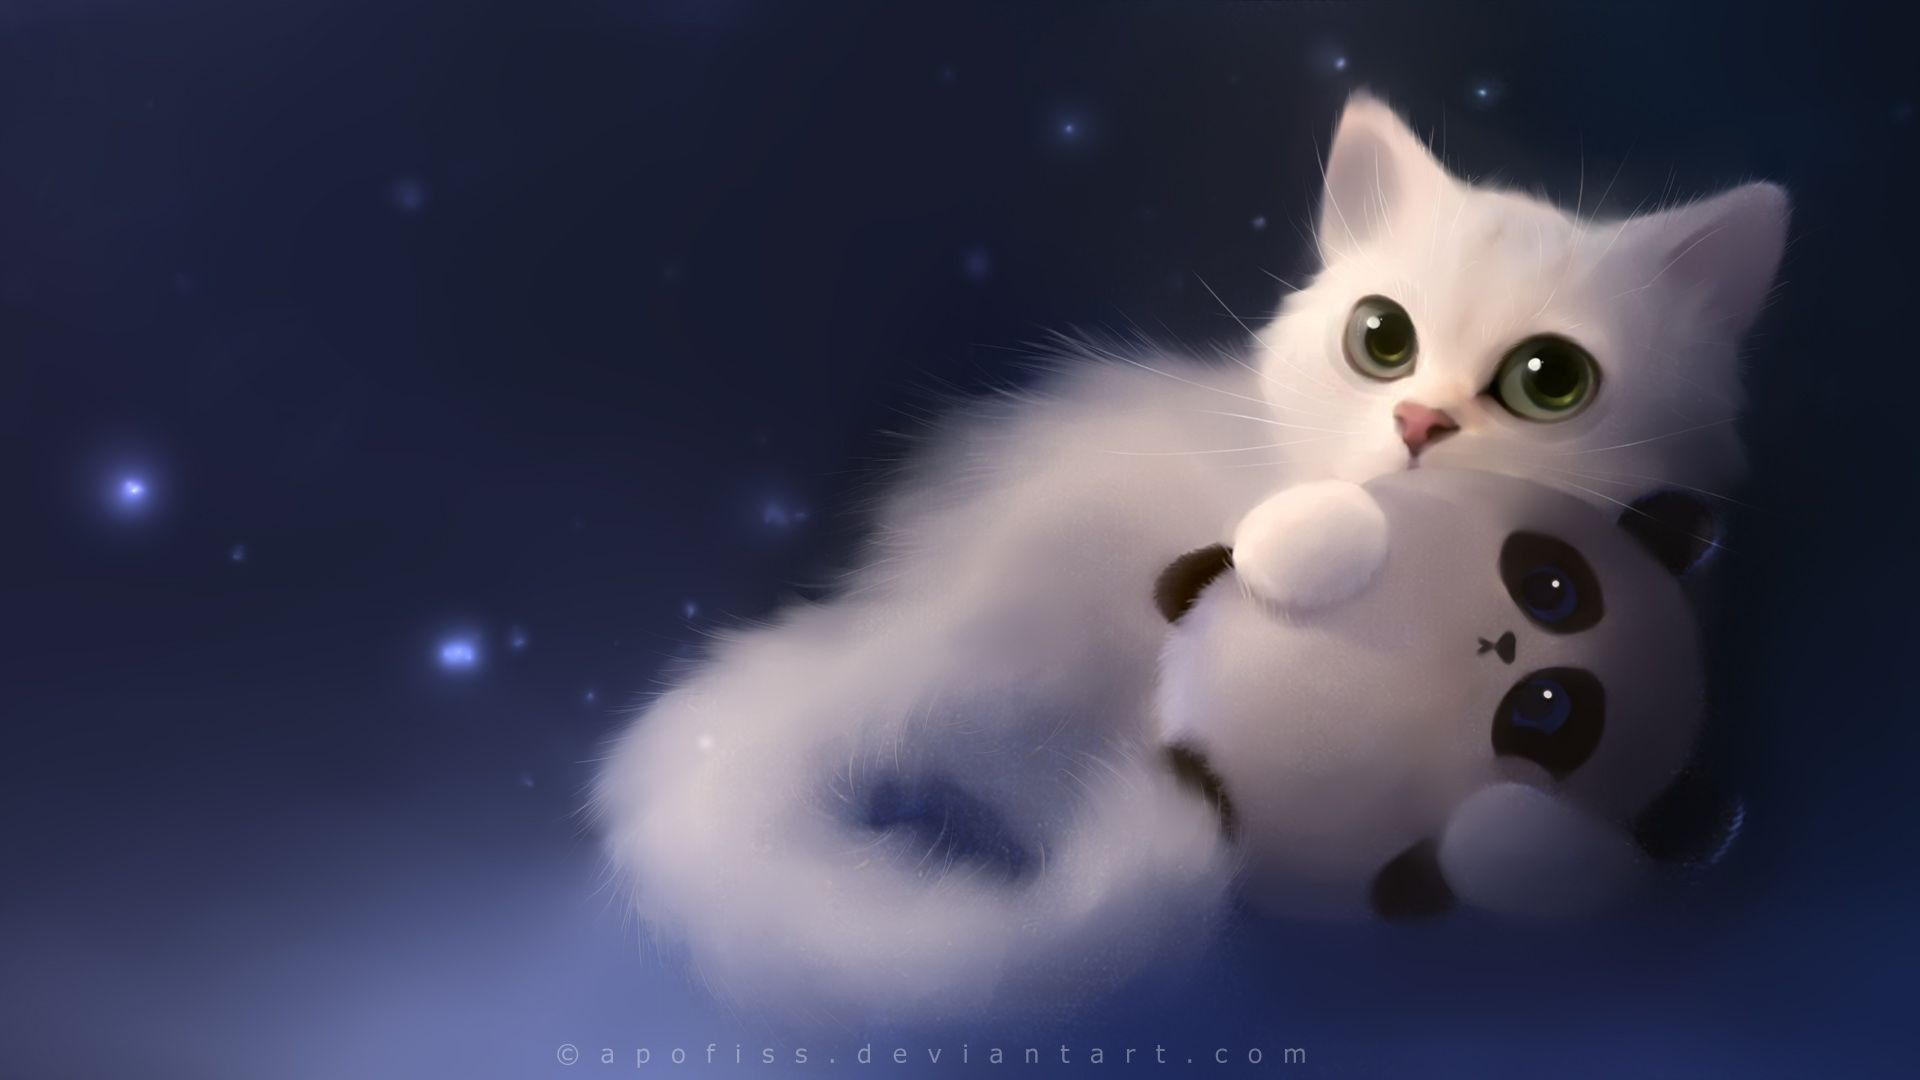 Cute Anime Cat Wallpapers   Top Cute Anime Cat Backgrounds 1920x1080